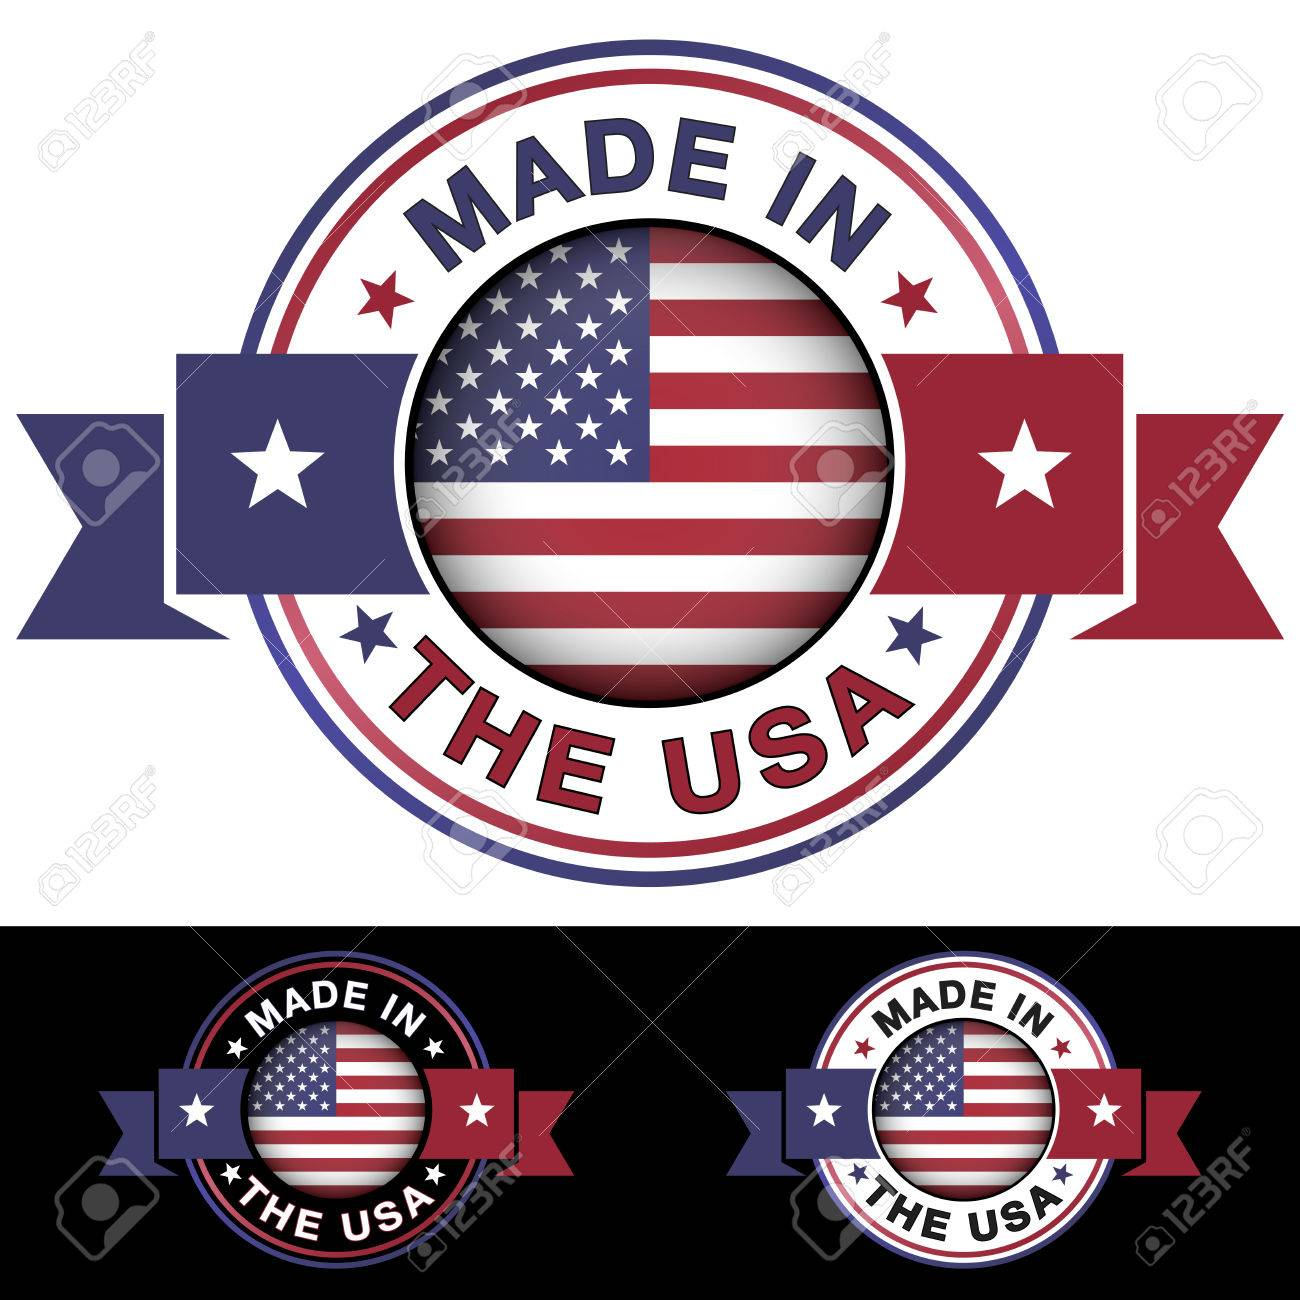 Made in the usa label and icon with ribbon and central glossy made in the usa label and icon with ribbon and central glossy united states of america buycottarizona